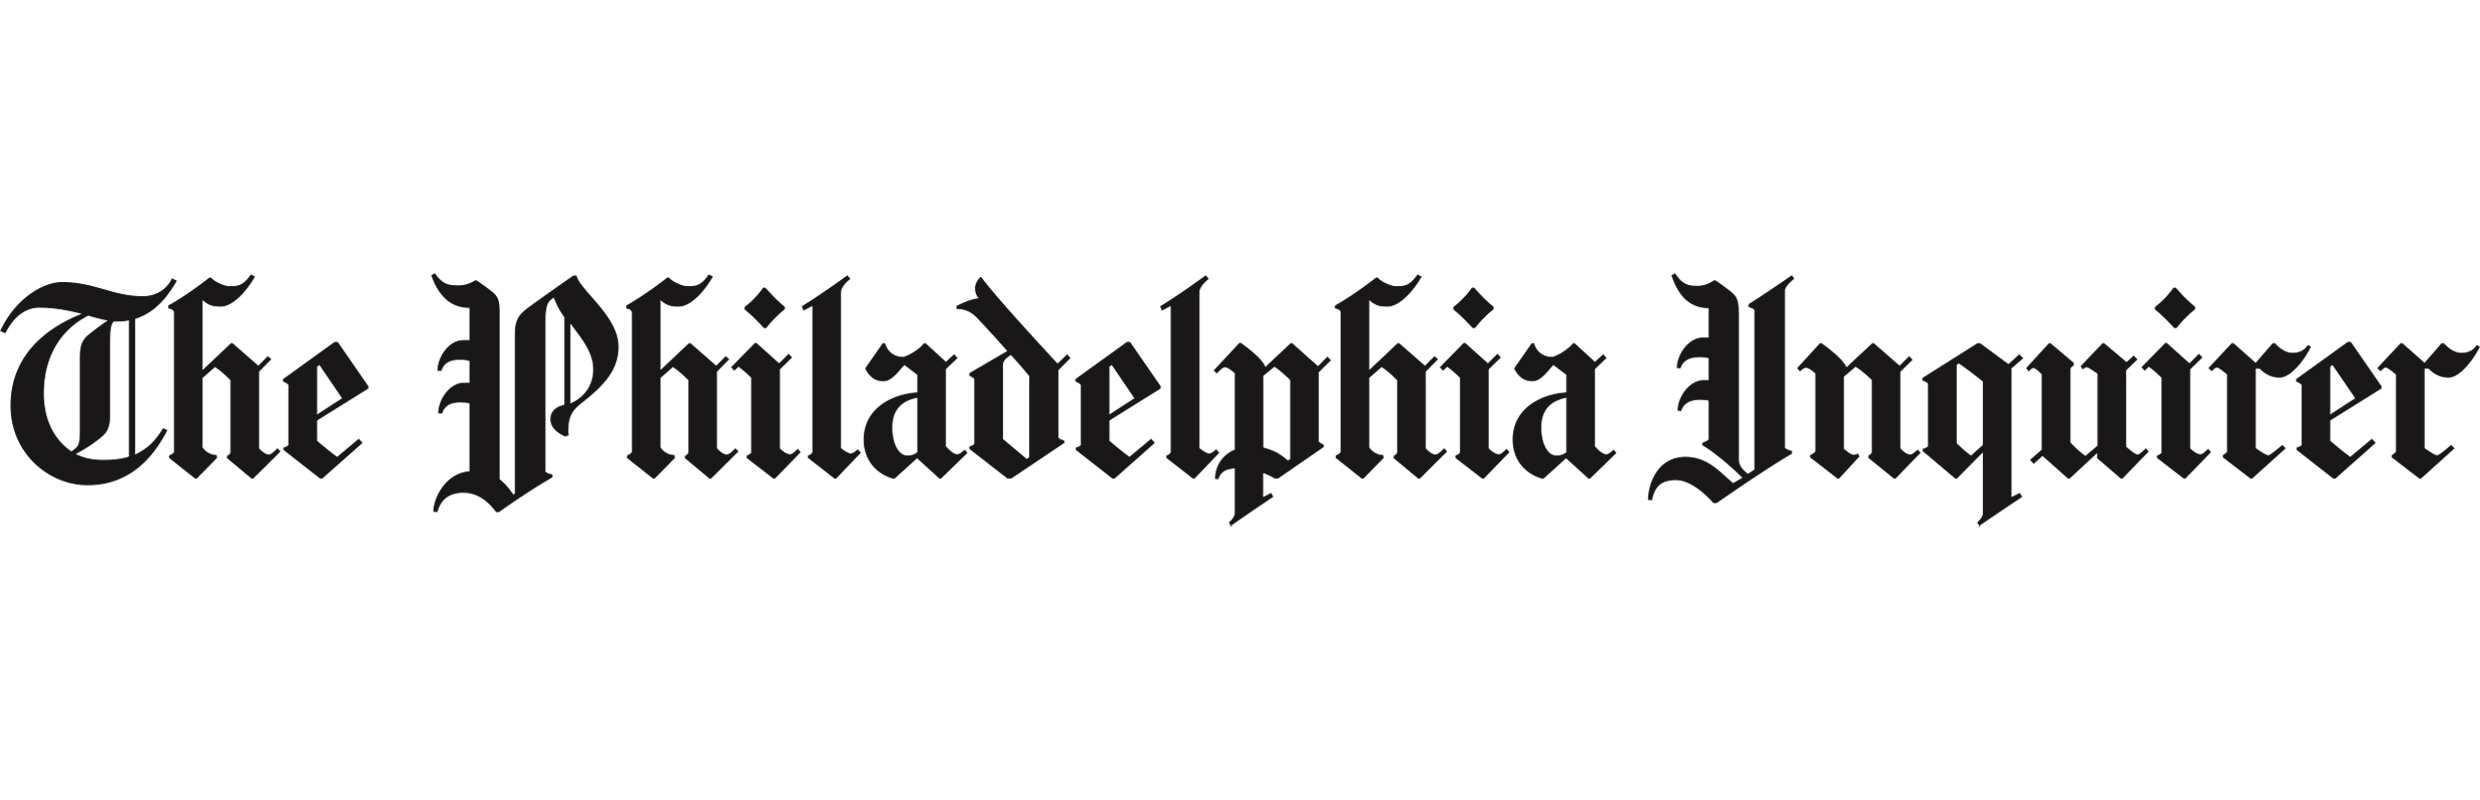 The philly inq selected